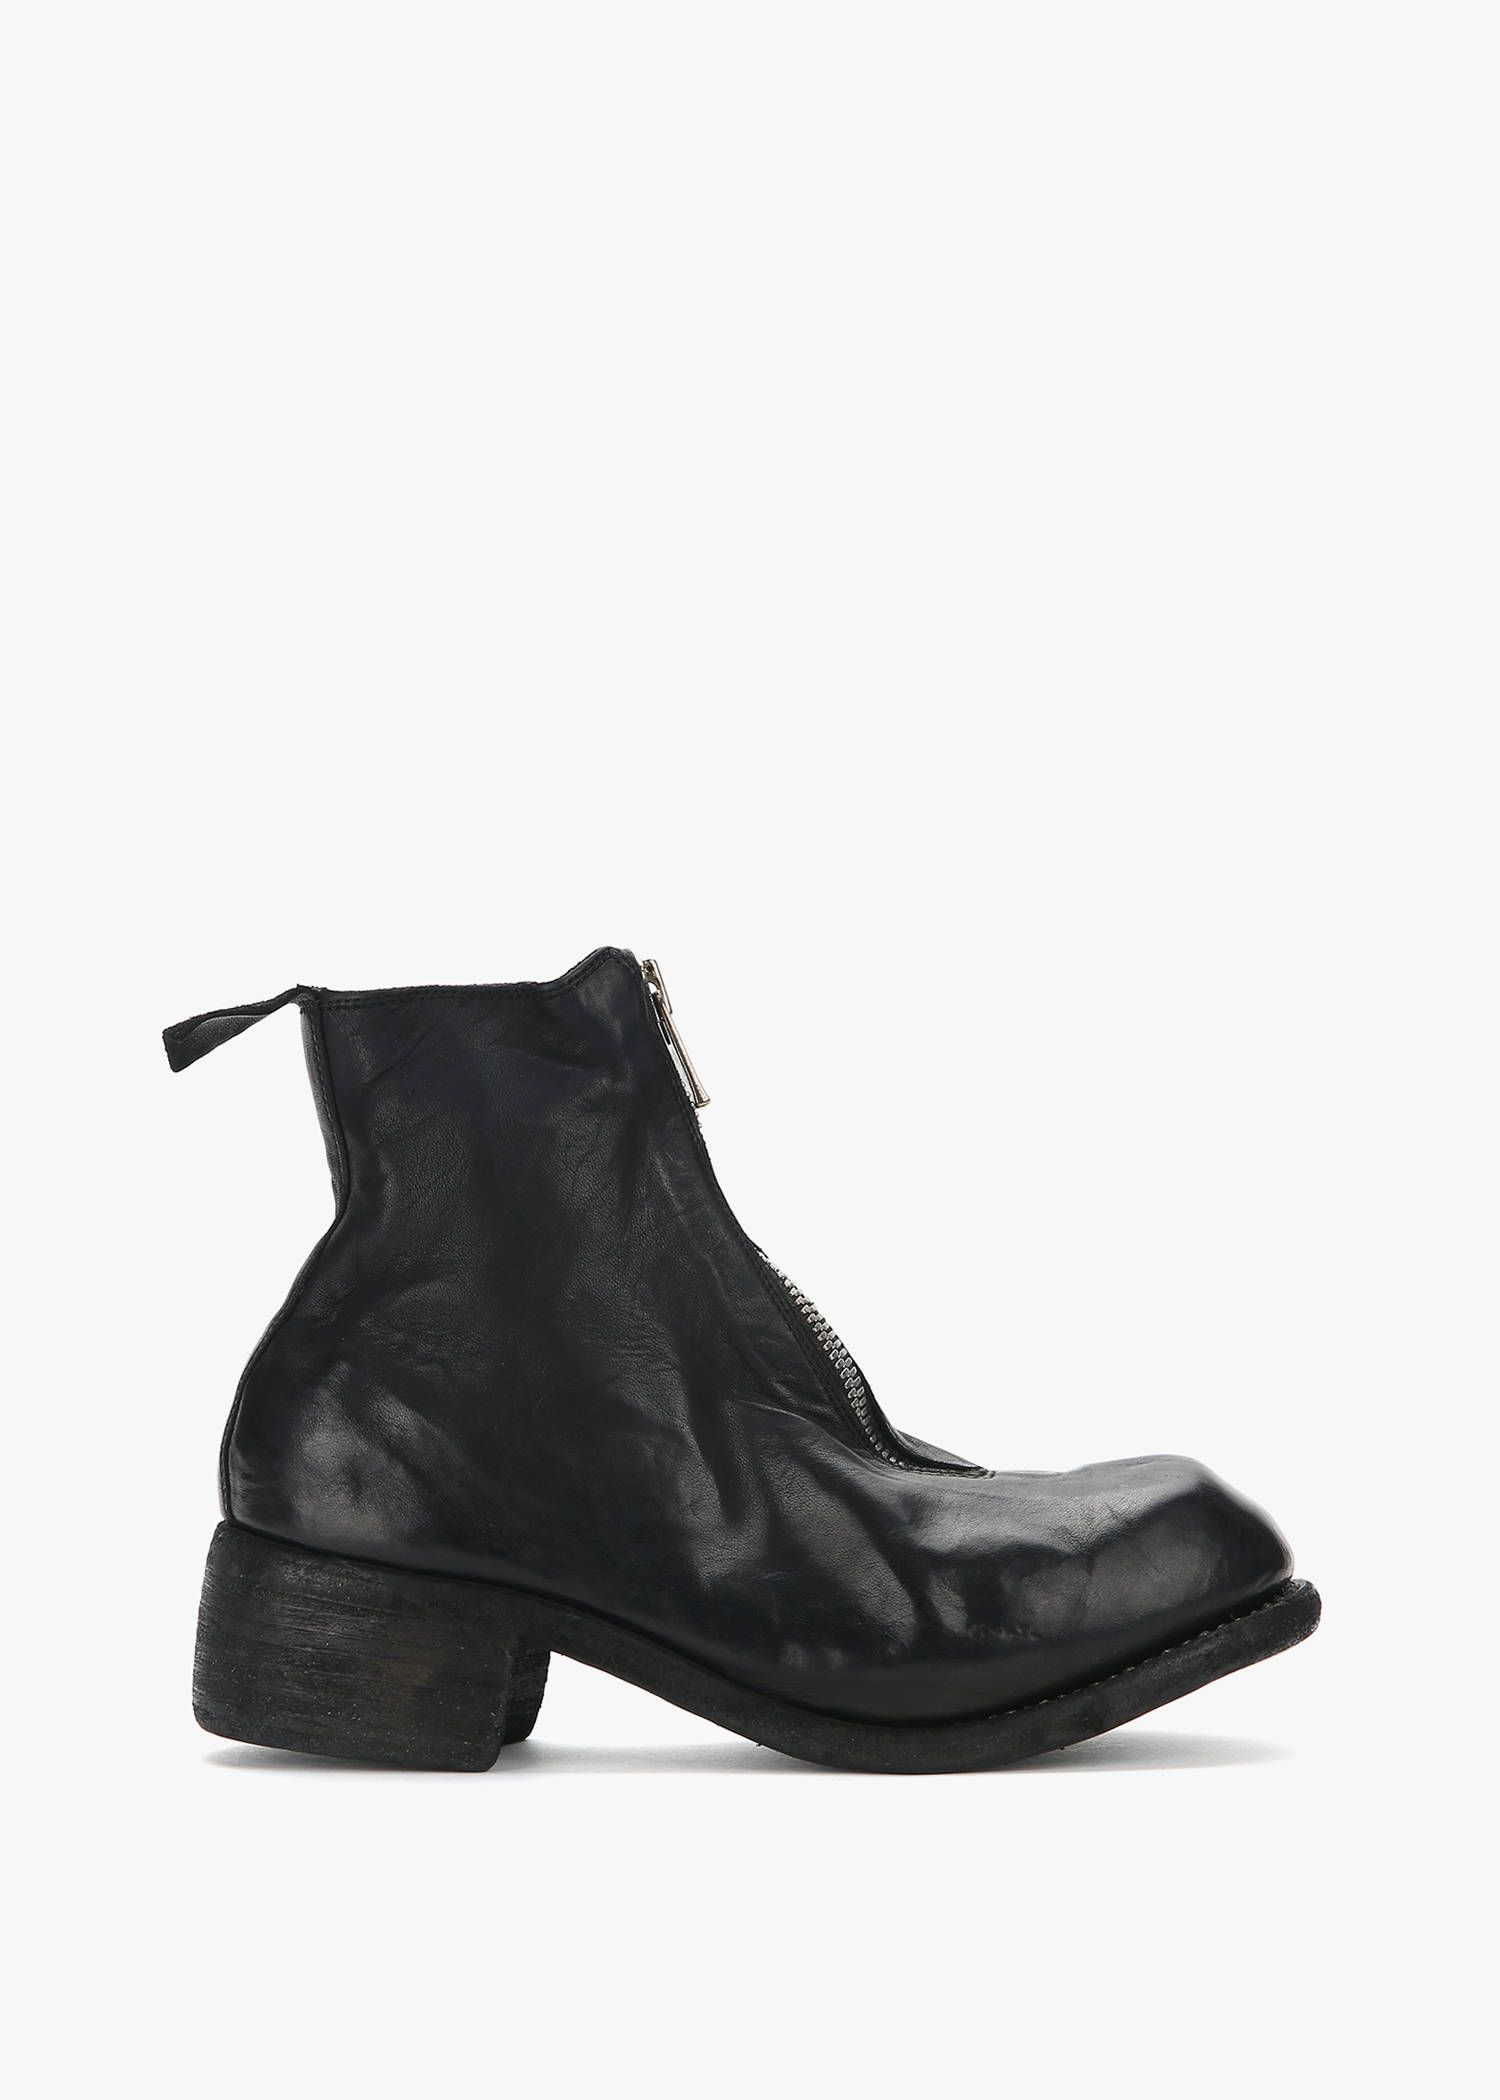 The Most Popular Guidi Pl1 Front Zip Leather Boots Black For Men On Sale